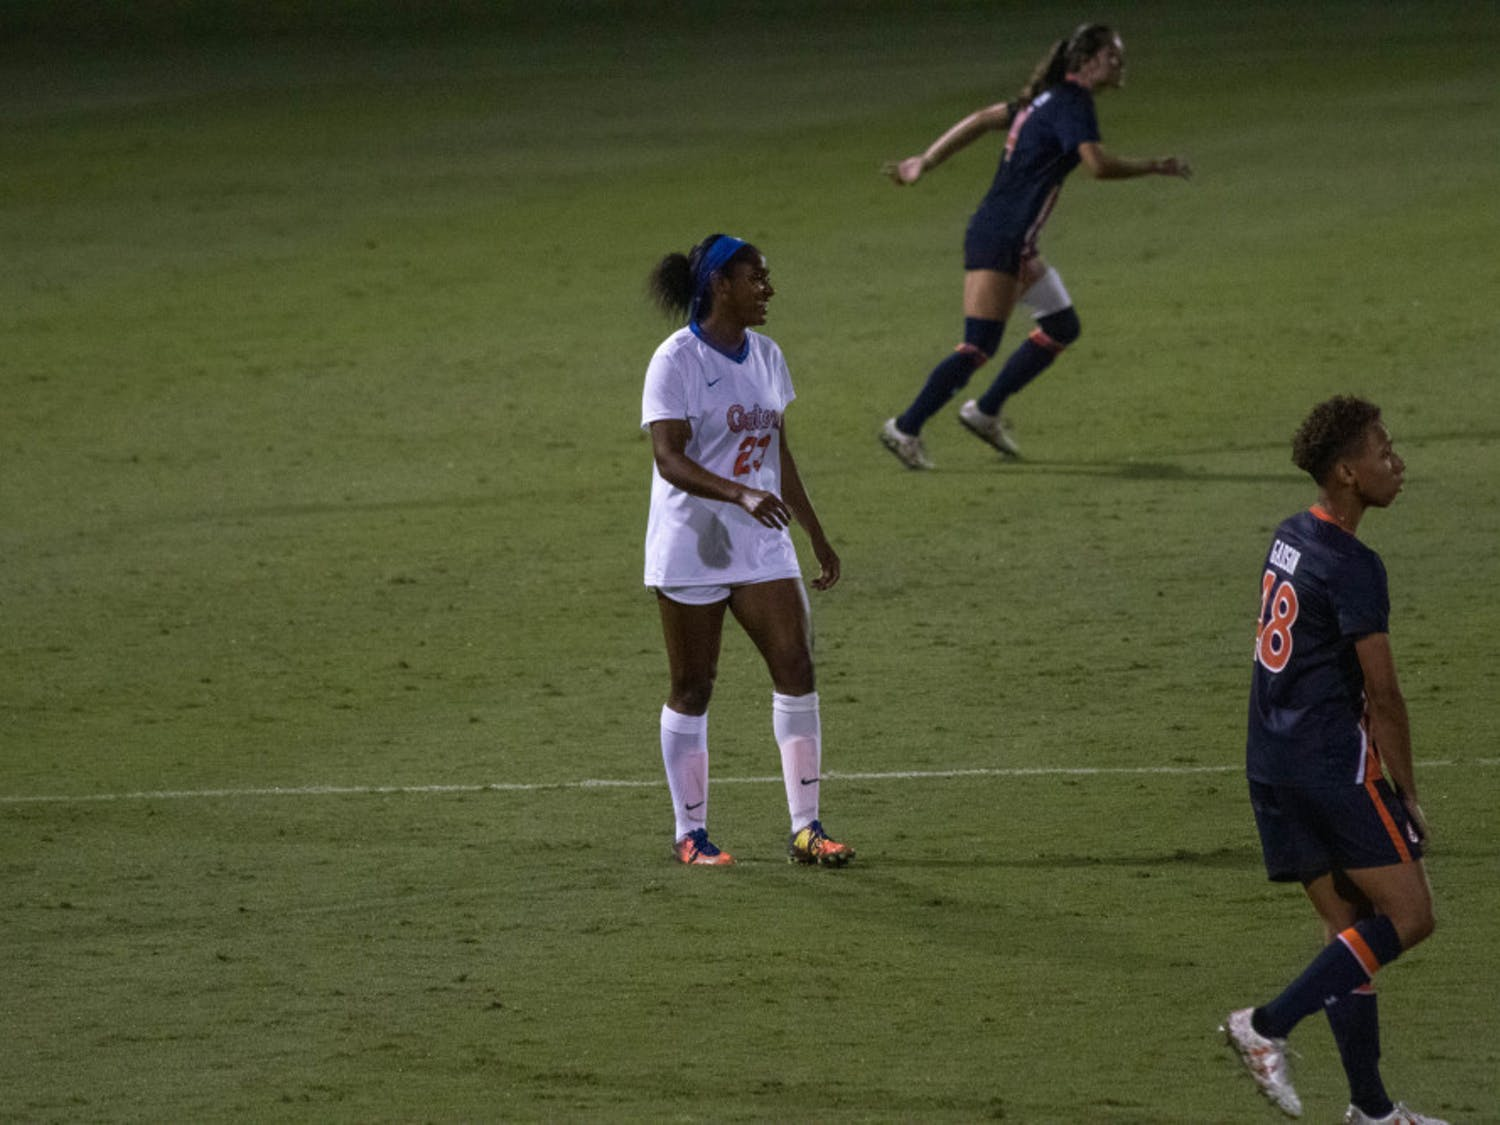 Florida's Kouri Peace, pictured in 2019, played on her birthday Sunday and saw two chances at a goal, but Miami held on for a 1-0 overtime victory at the buzzer.